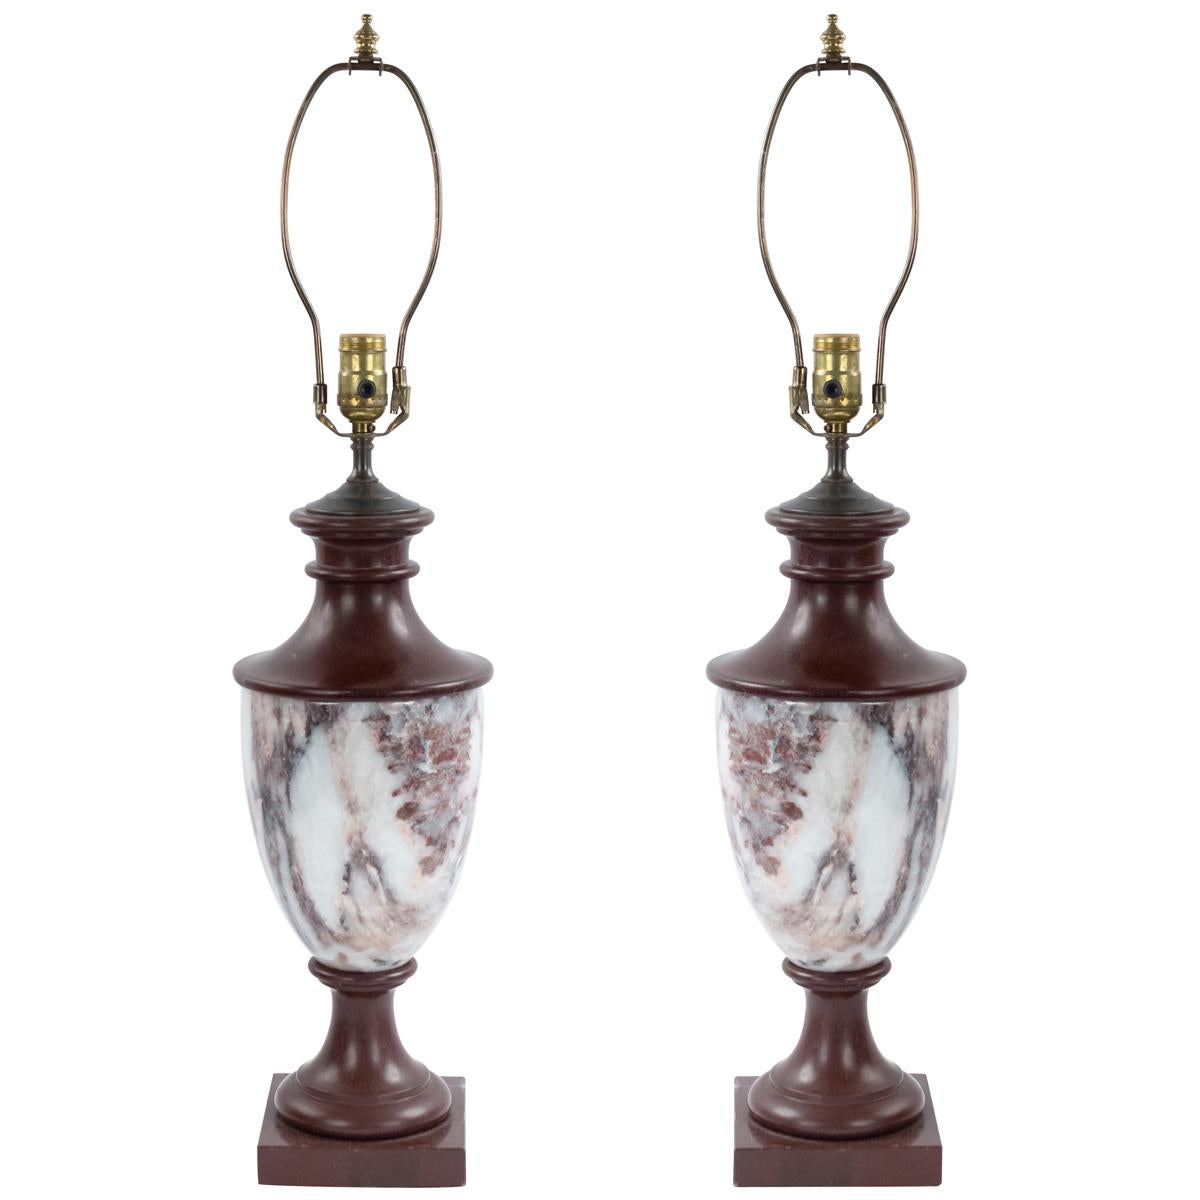 Pair of Italian Neoclassic Style Marble Urn Table Lamps